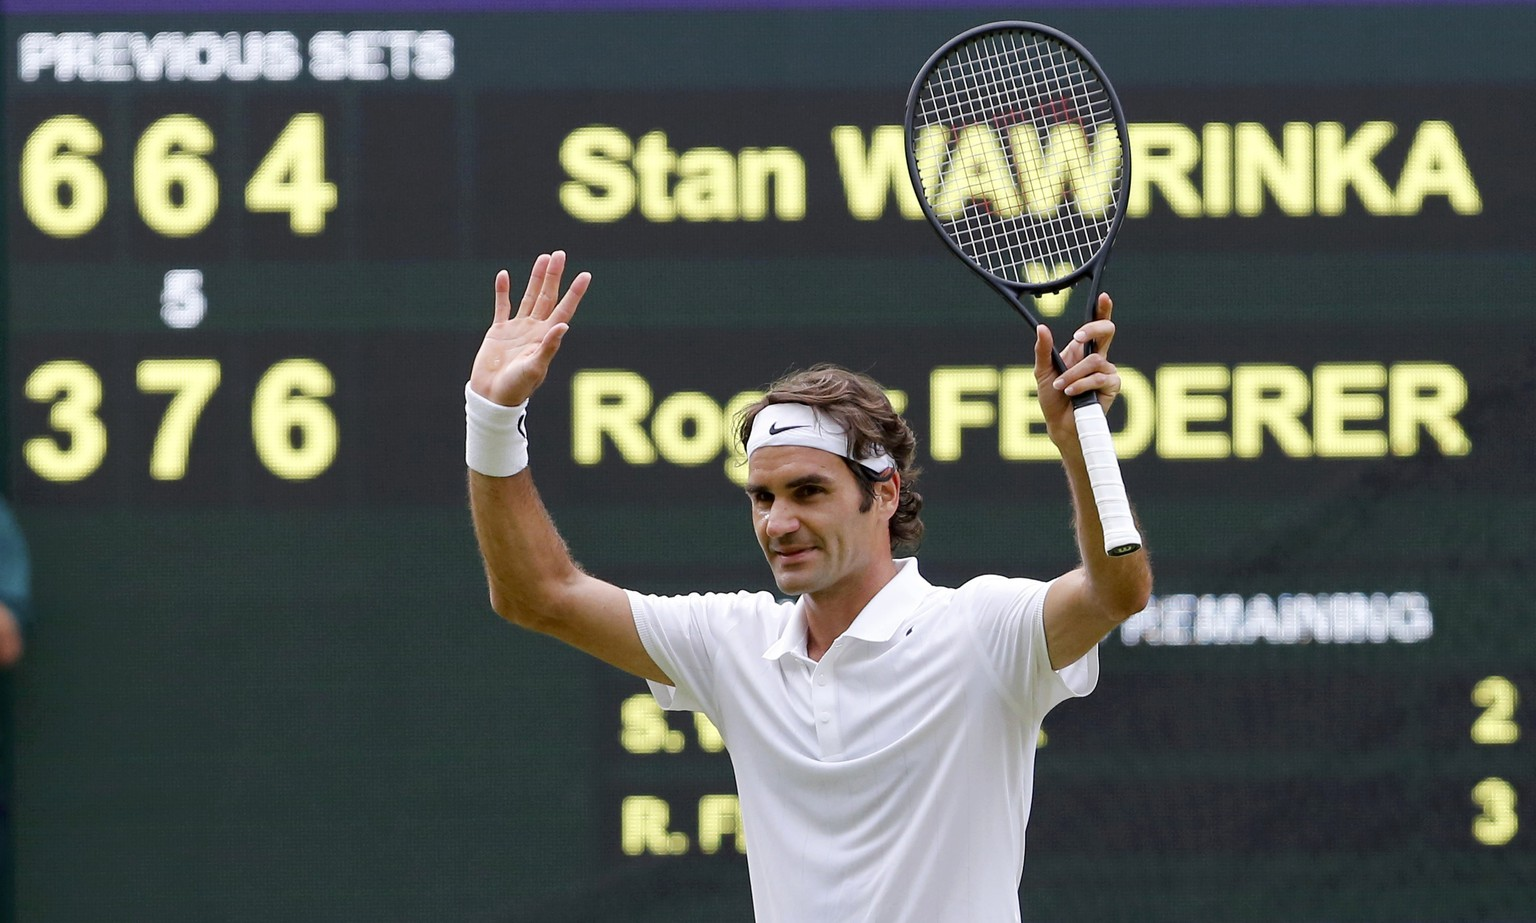 Roger Federer of Switzerland reacts after defeating Stanislas Wawrinka of Switzerland in their men's singles quarter-final tennis match at the Wimbledon Tennis Championships, in London July 2, 2014.            REUTERS/Suzanne Plunkett (BRITAIN  - Tags: SPORT TENNIS TPX IMAGES OF THE DAY)